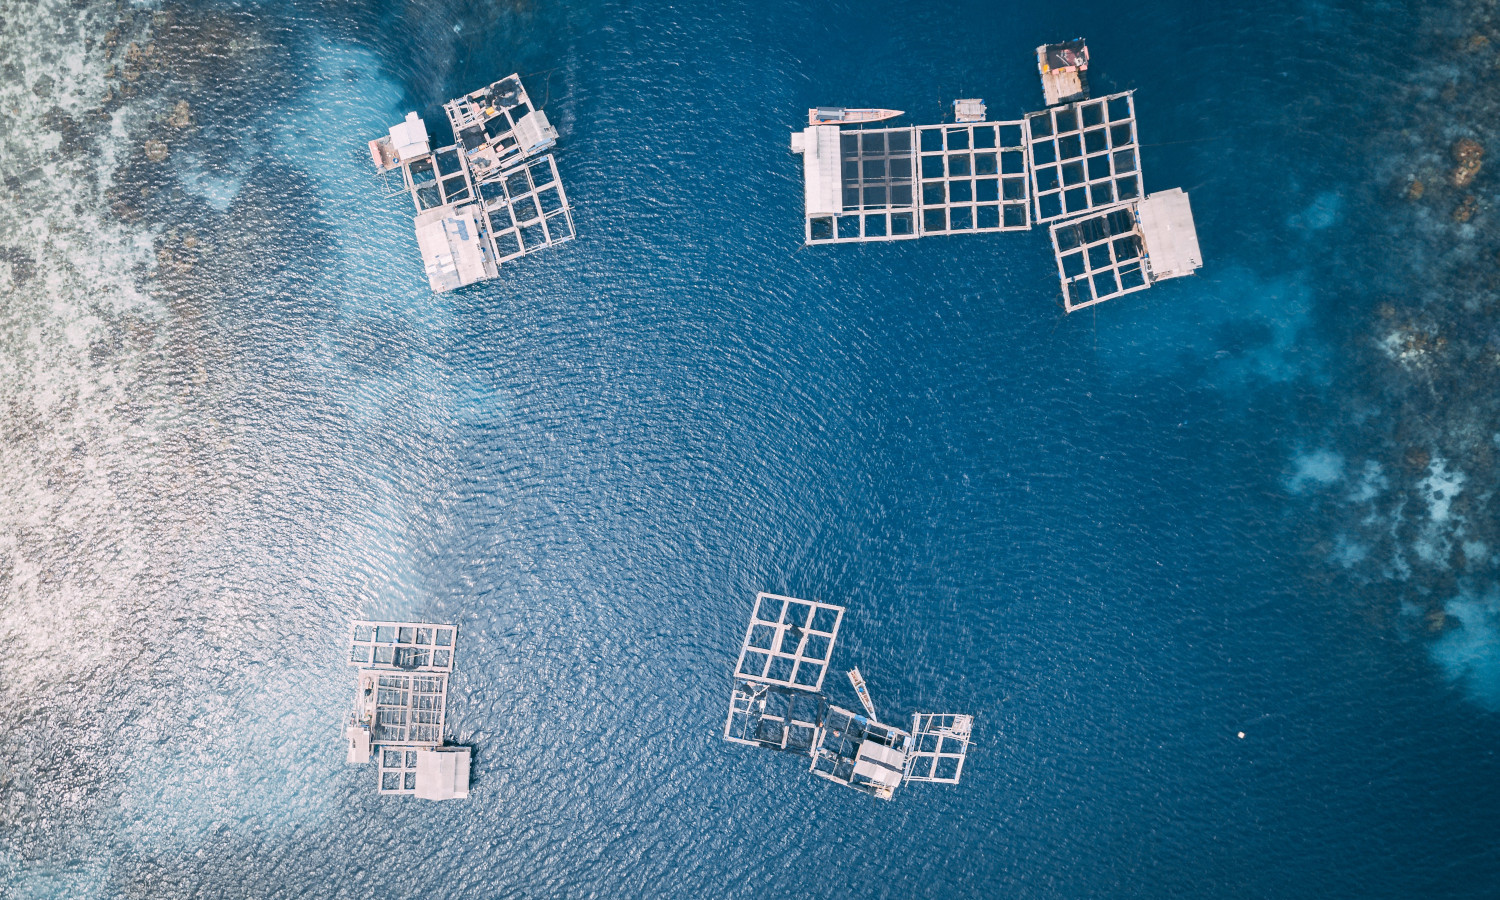 Aquaculture can help feed the world's growing population if the industry continues to embrace sustainability measures and environmental precautions.